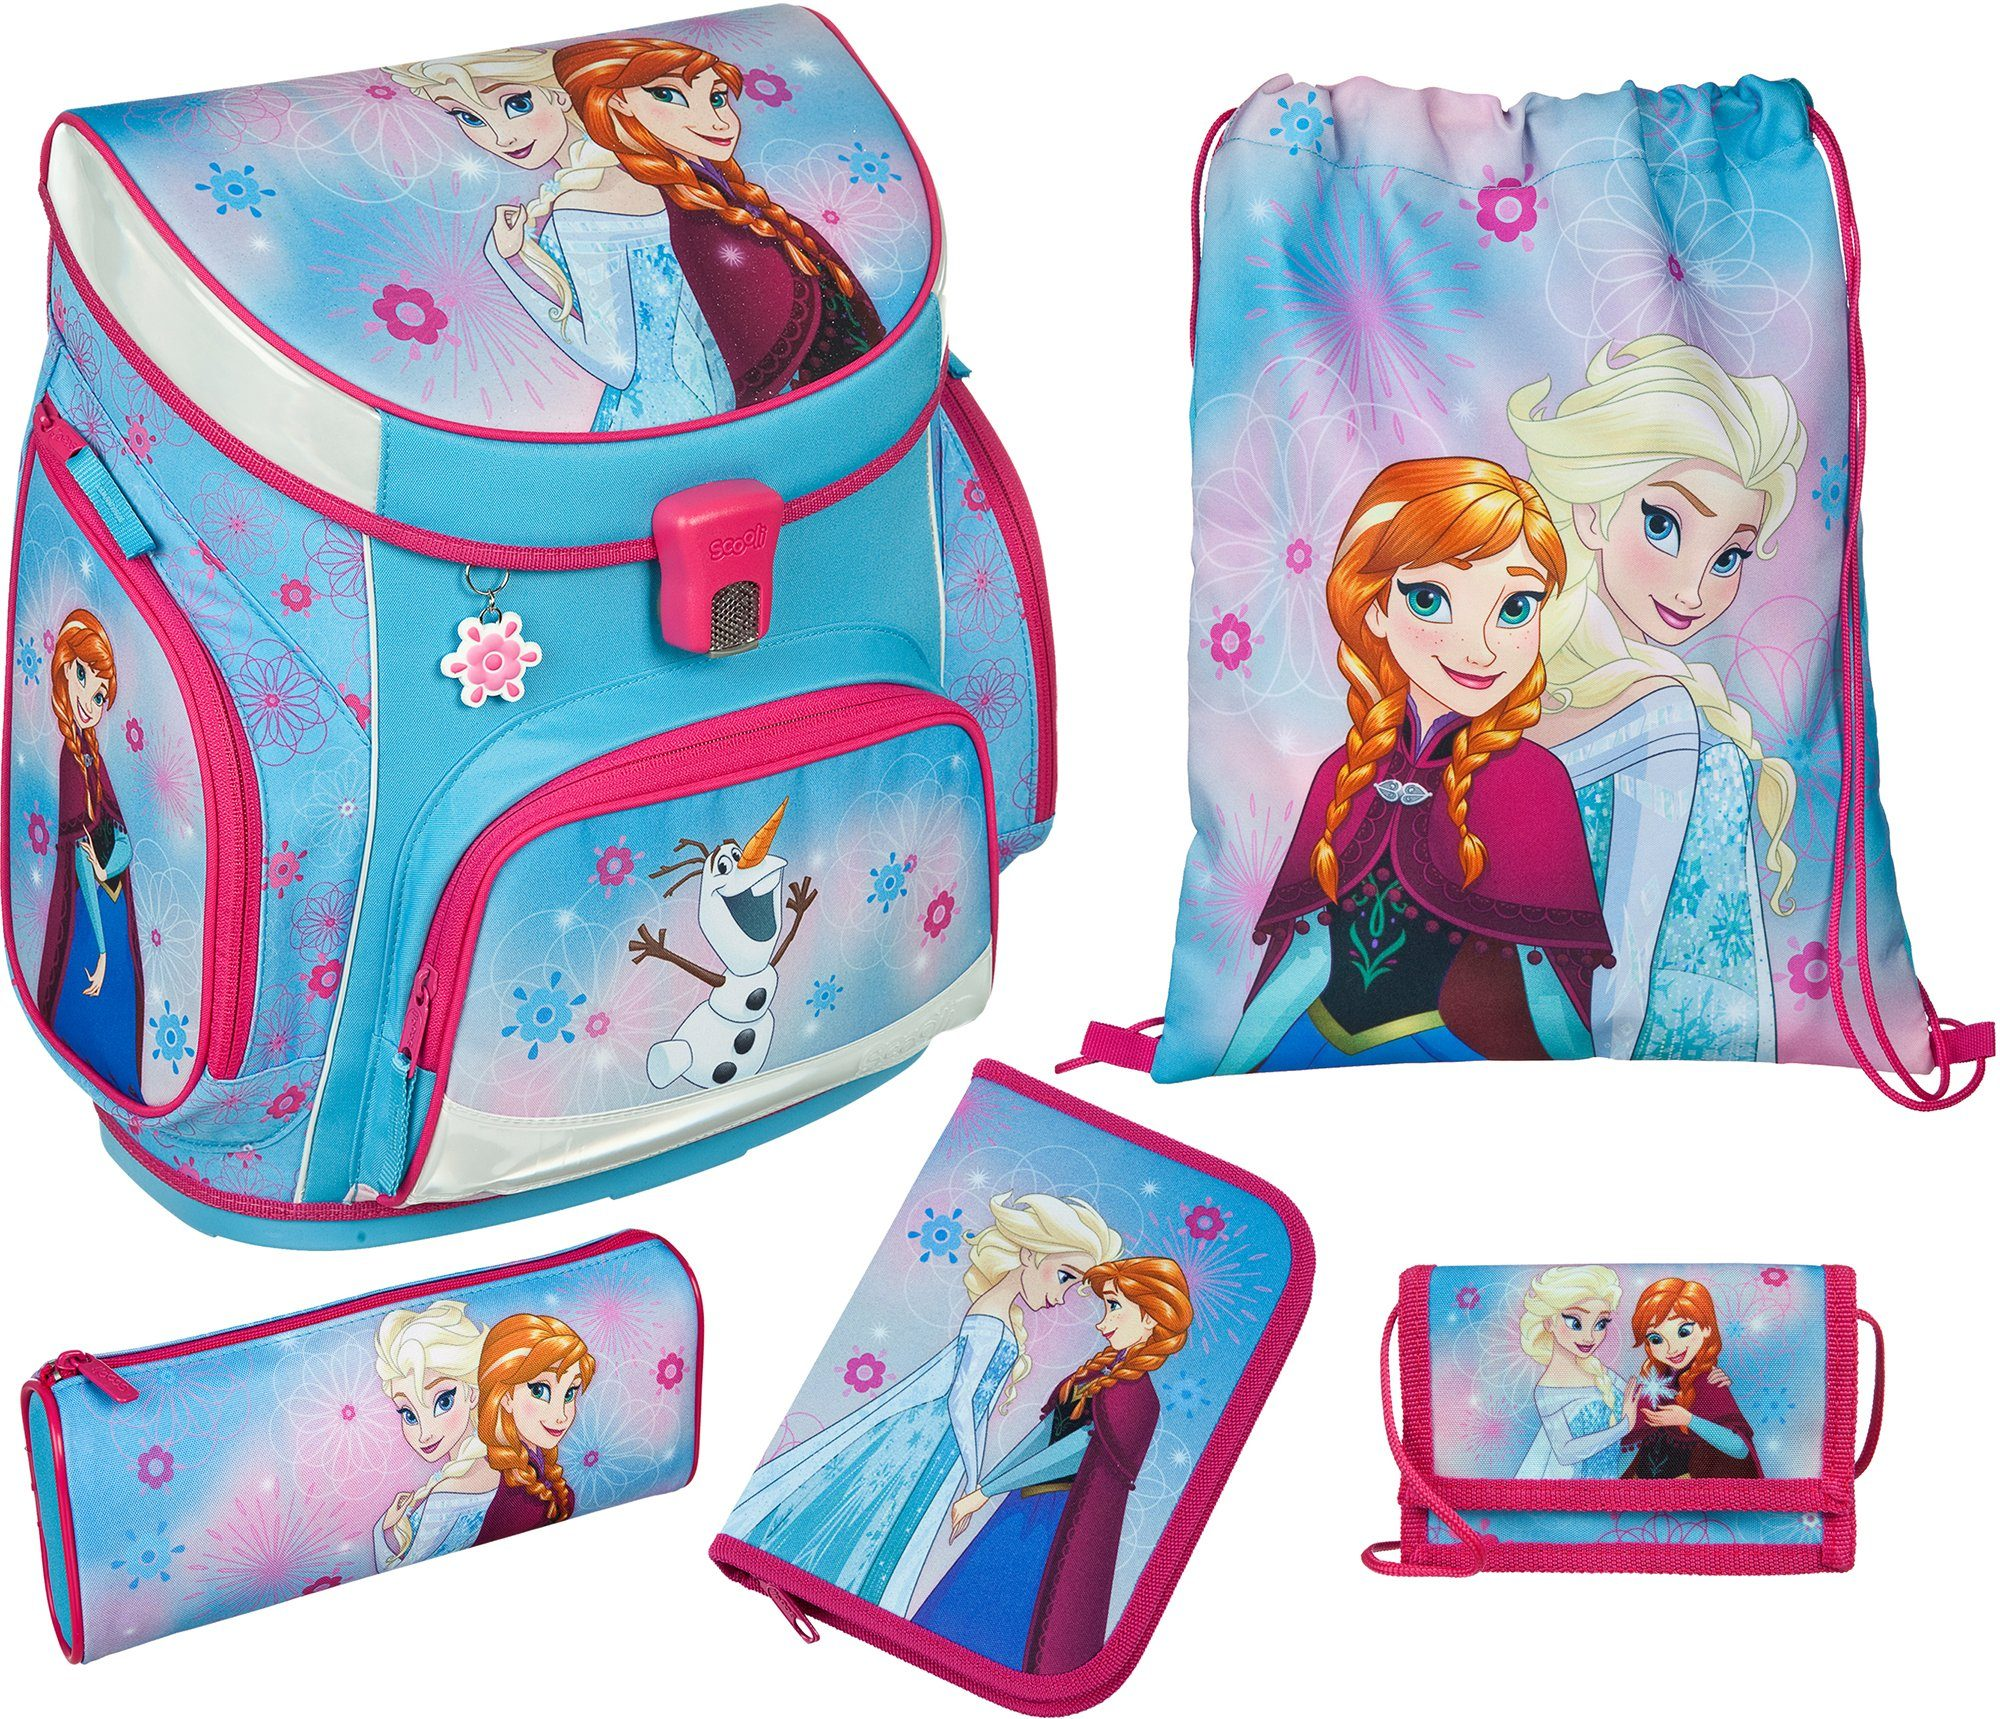 Scooli Schulranzen Set 5tlg., »Campus Up Frozen«